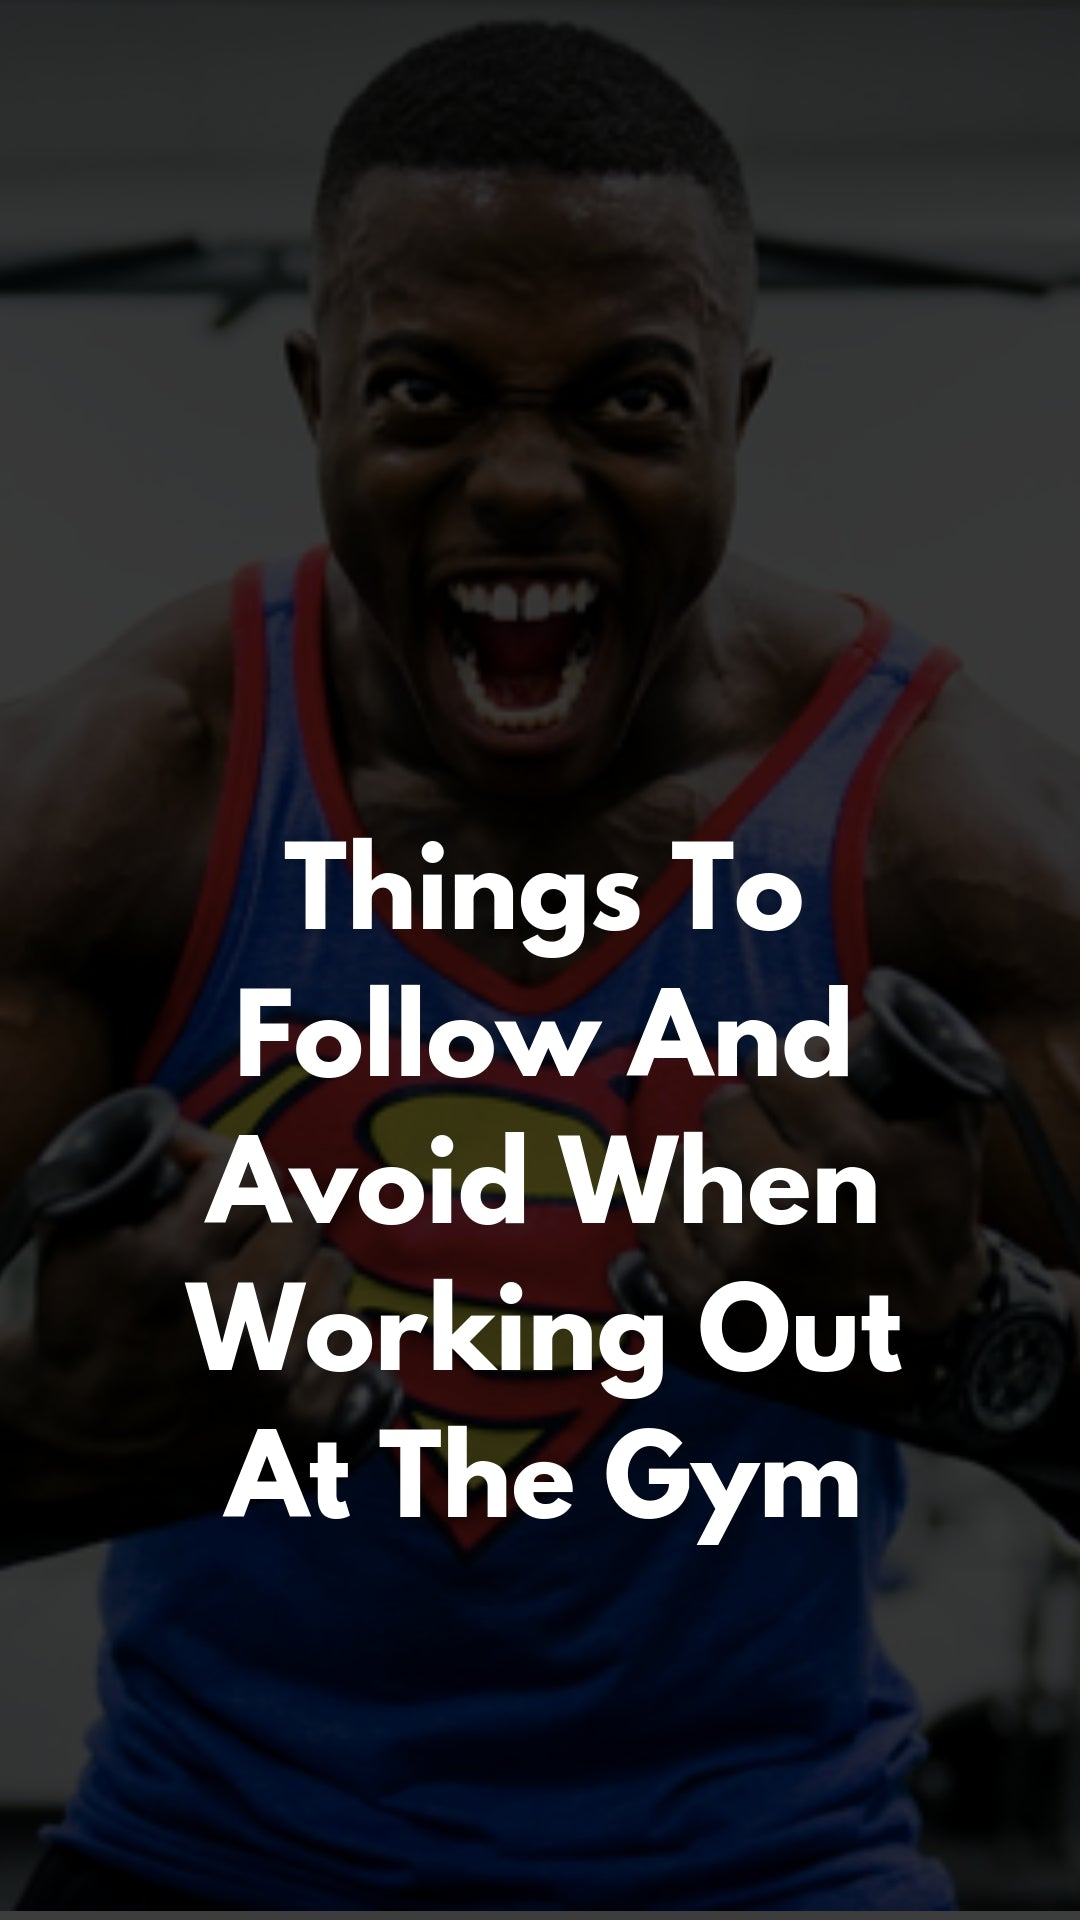 Things To Follow And Avoid When Working Out At The Gym #gymrules